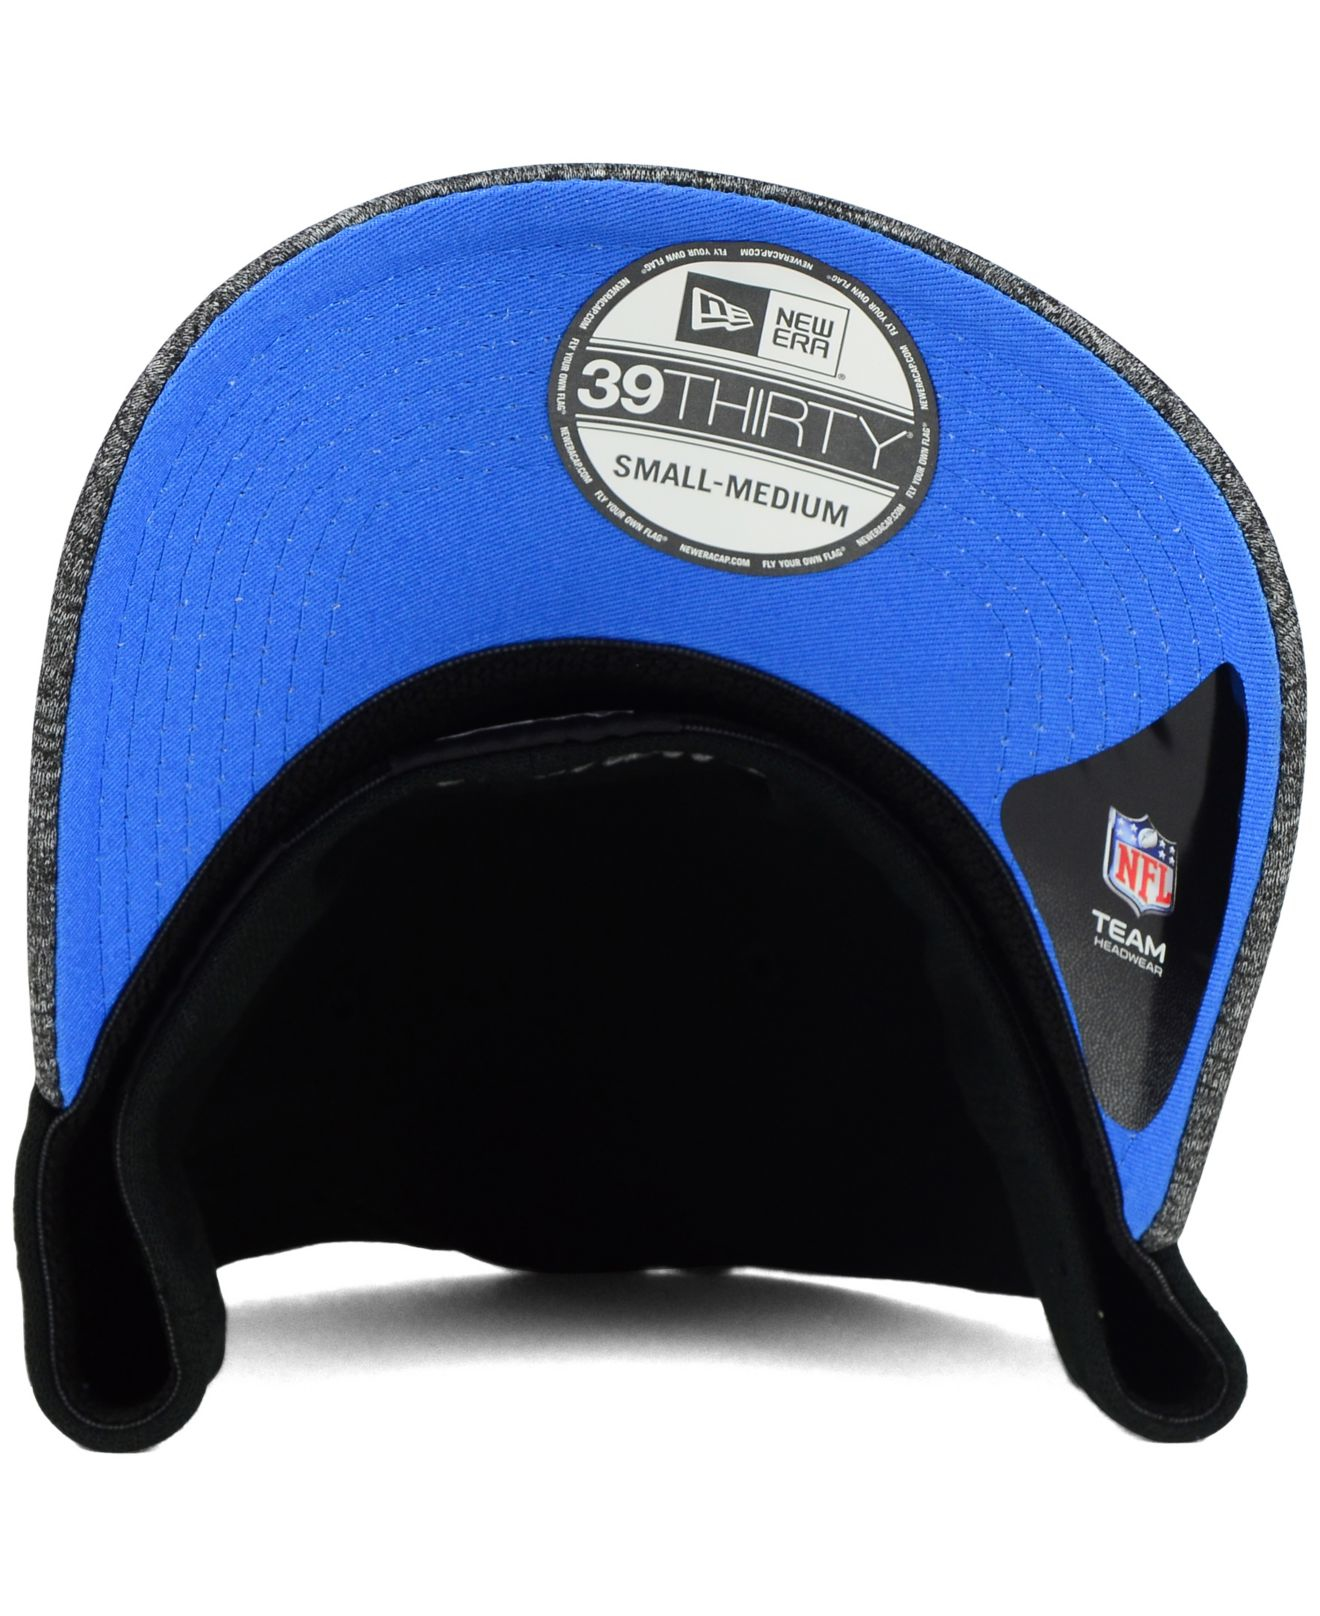 San Diego Chargers Car Accessories: Ktz San Diego Chargers Gridiron 39thirty Cap In Black For